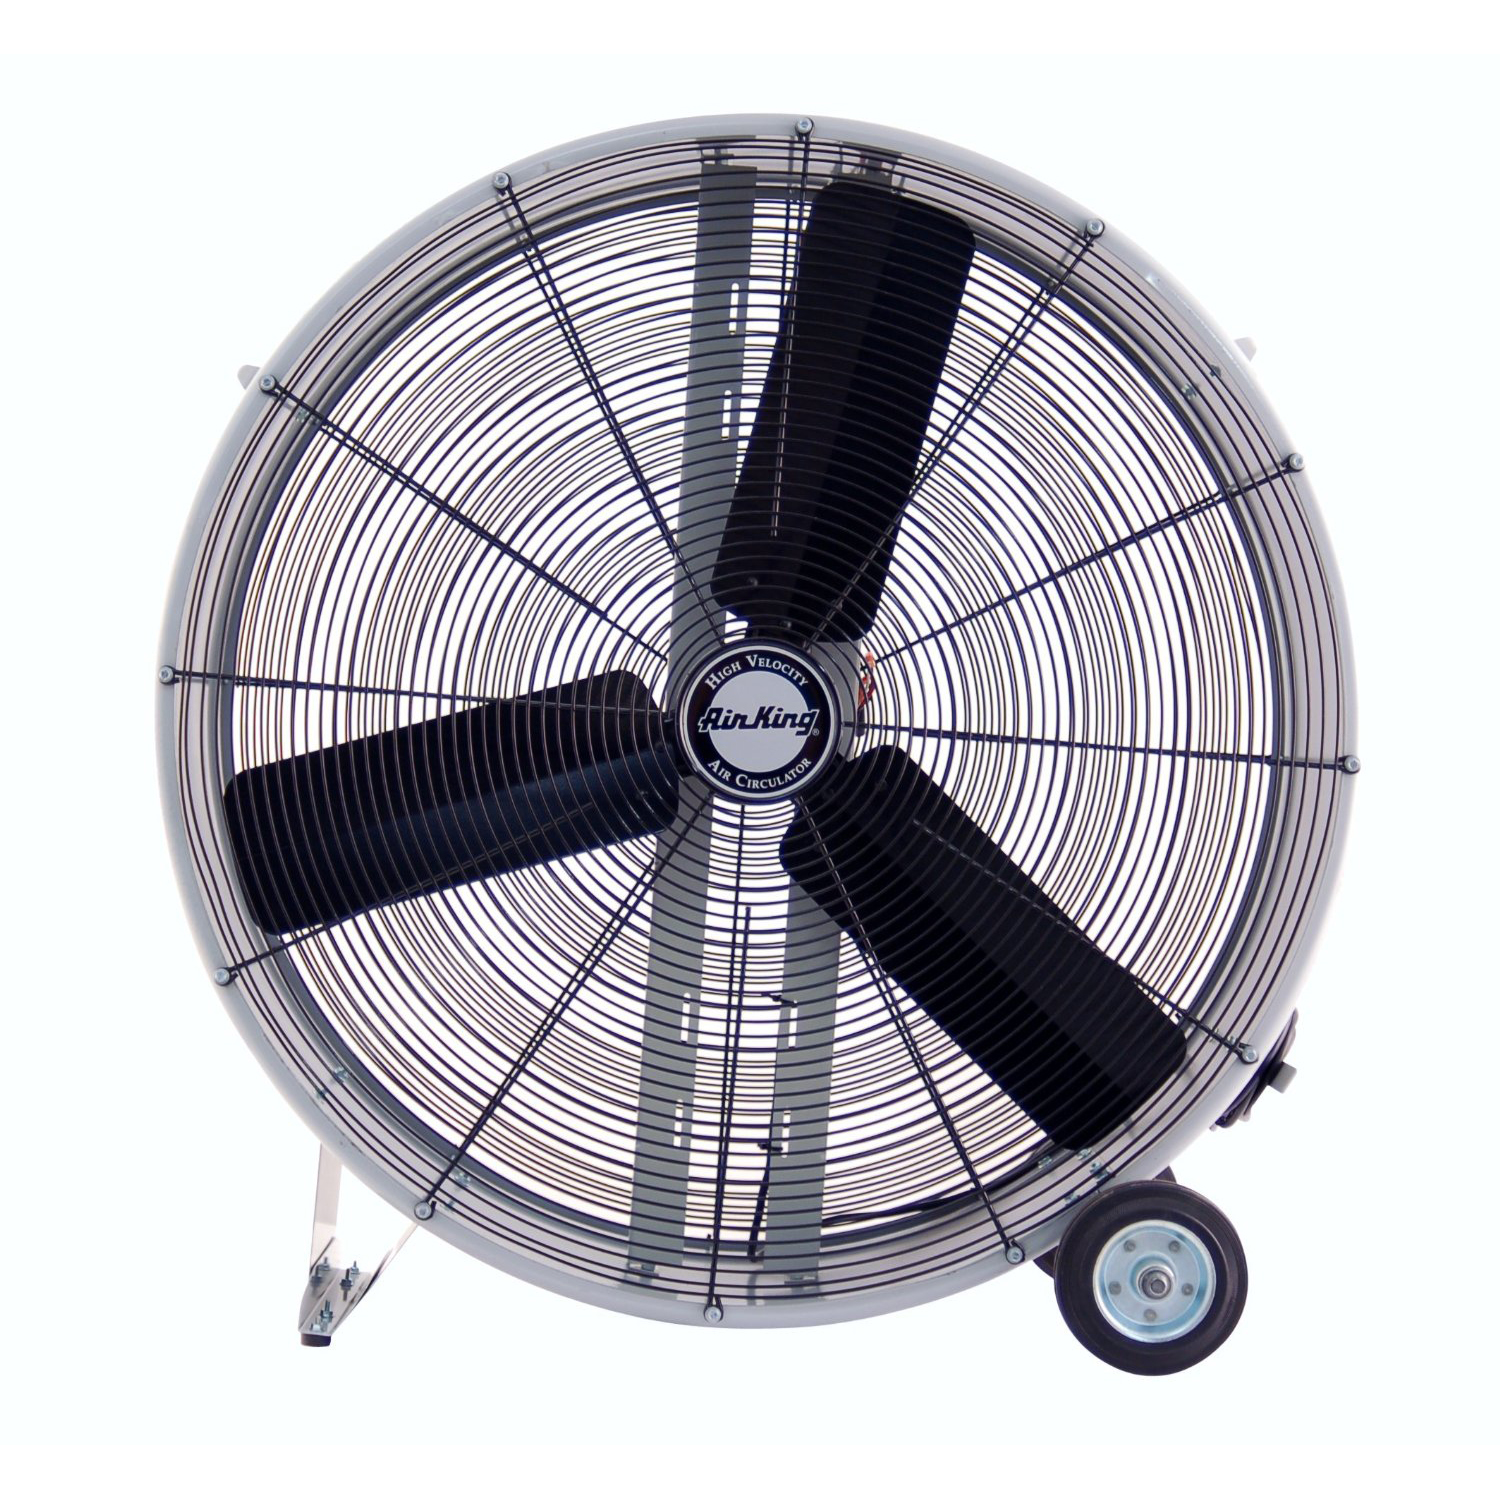 36 Inch Direct Drive Fans : Air king d quot direct industrial grade high velocity